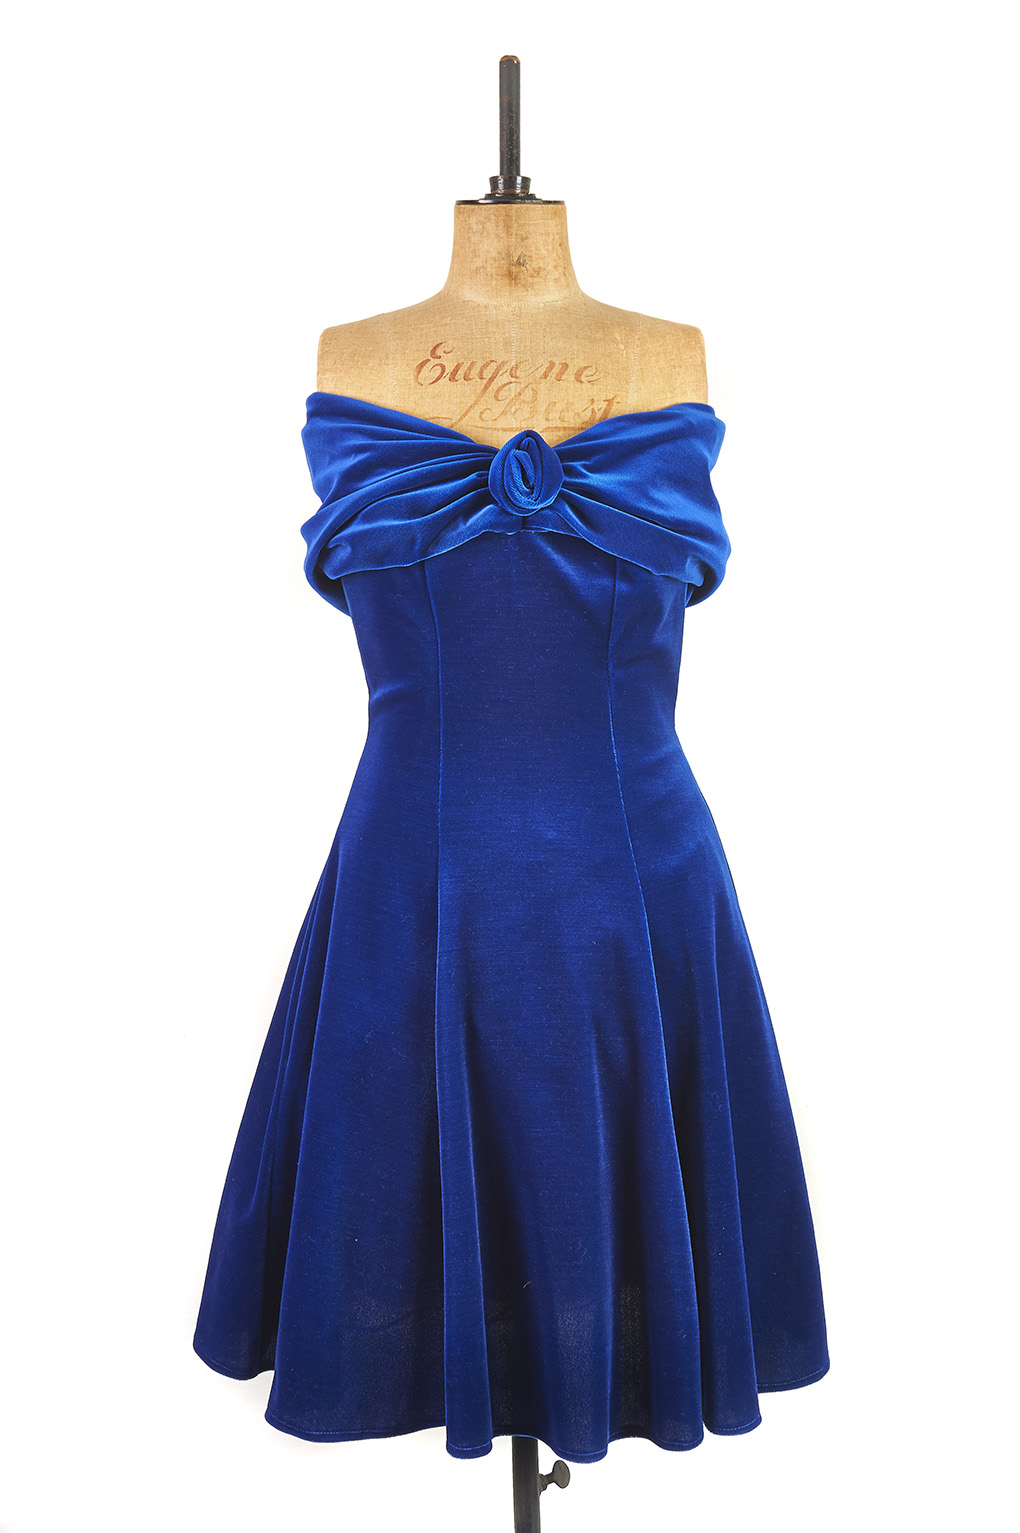 Blue Velvet Dress by Hamells c.1980